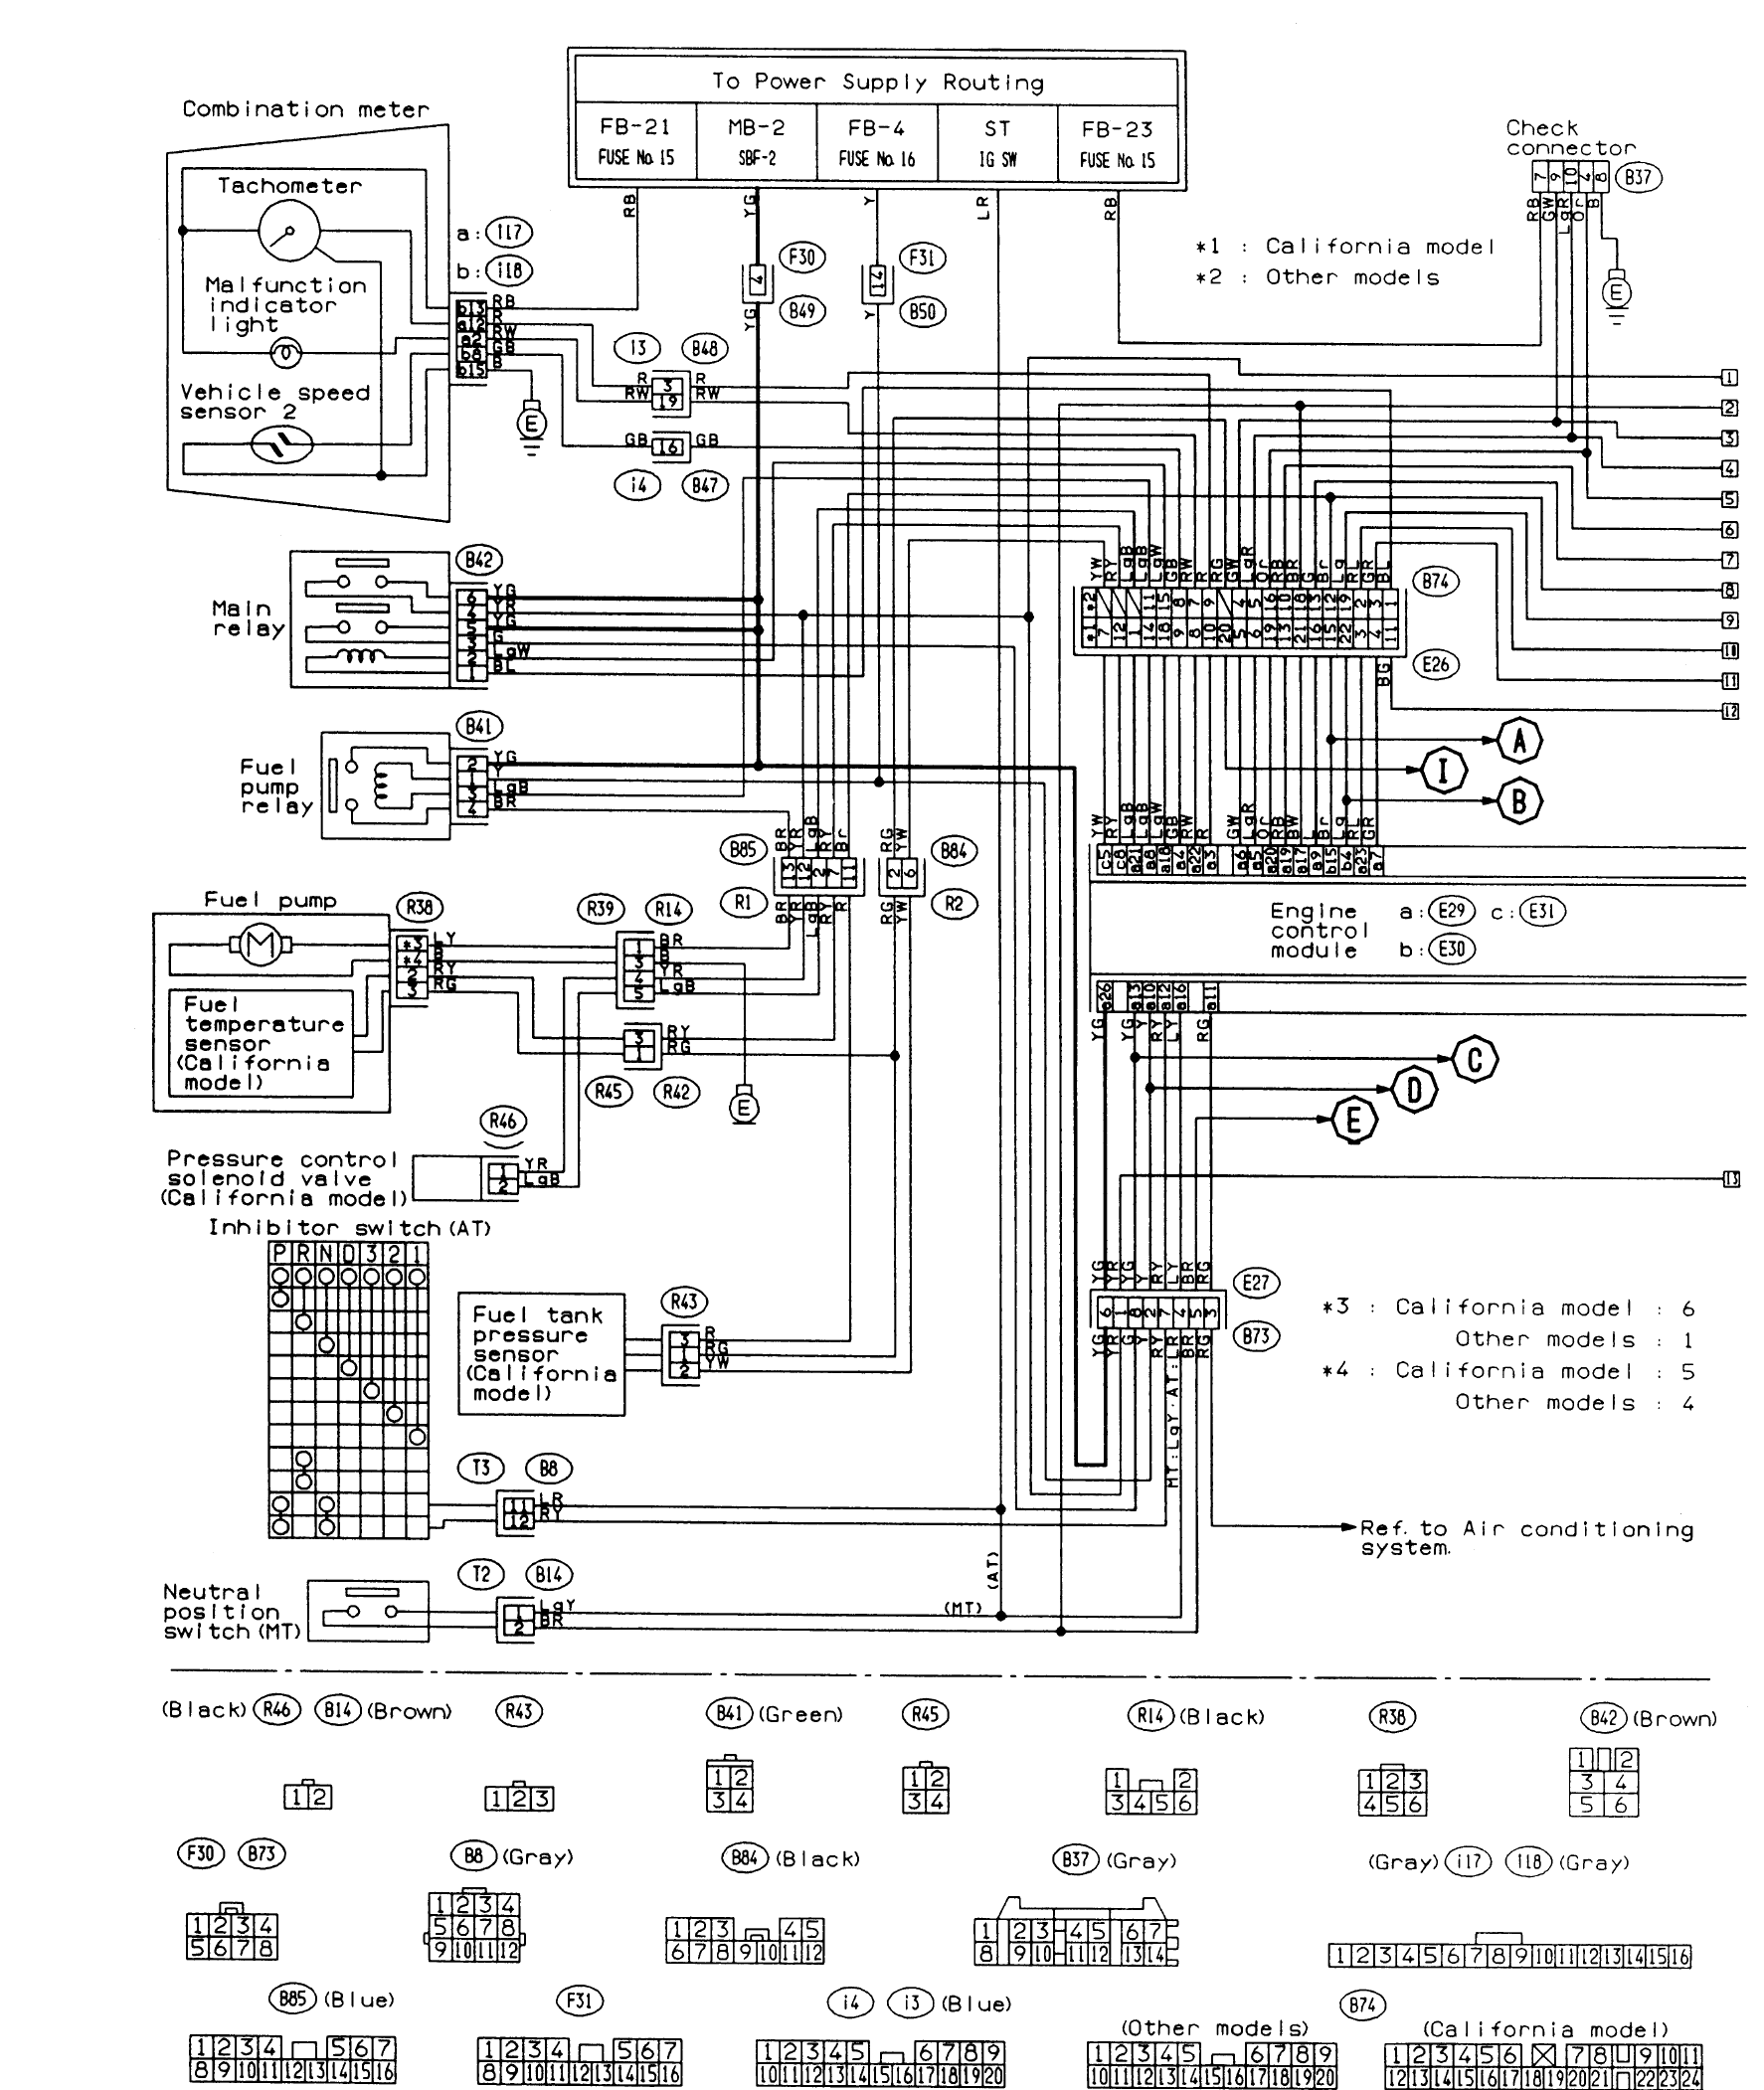 electrical diagram for ac unit in 2009 subaru forester | Pinouts for 95  impreza 1.8 ECU? - NASIOC